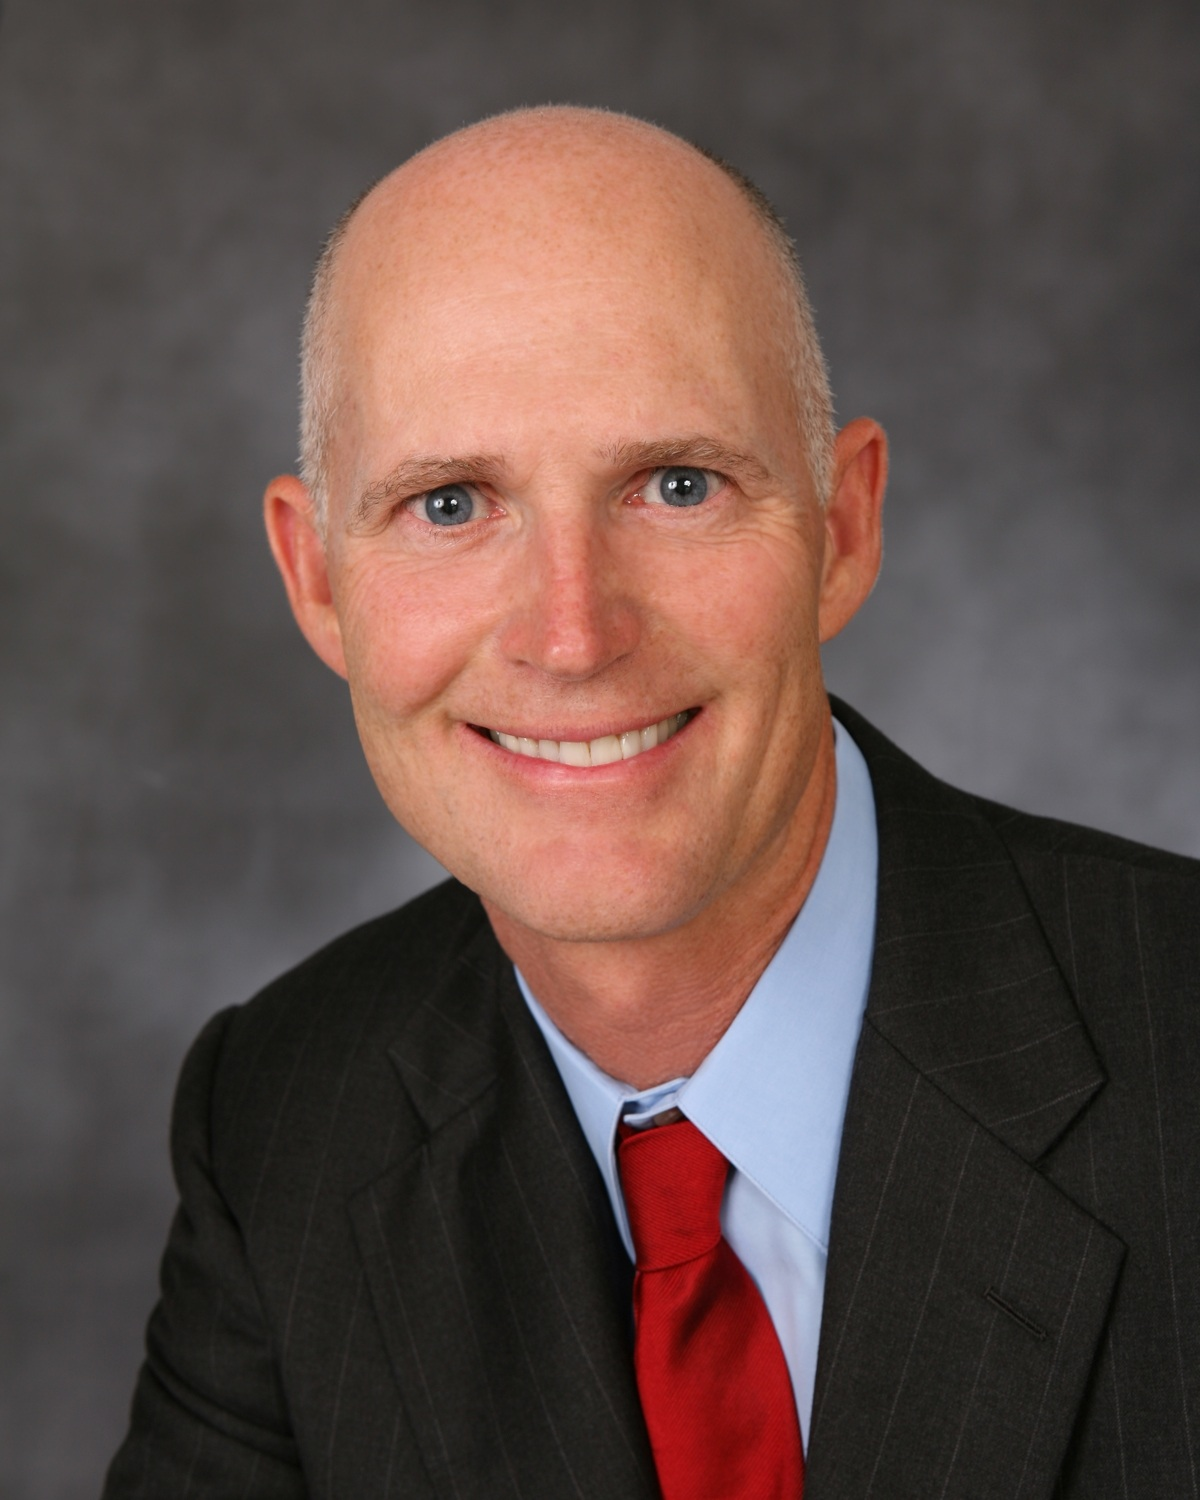 Generic image of rick scott